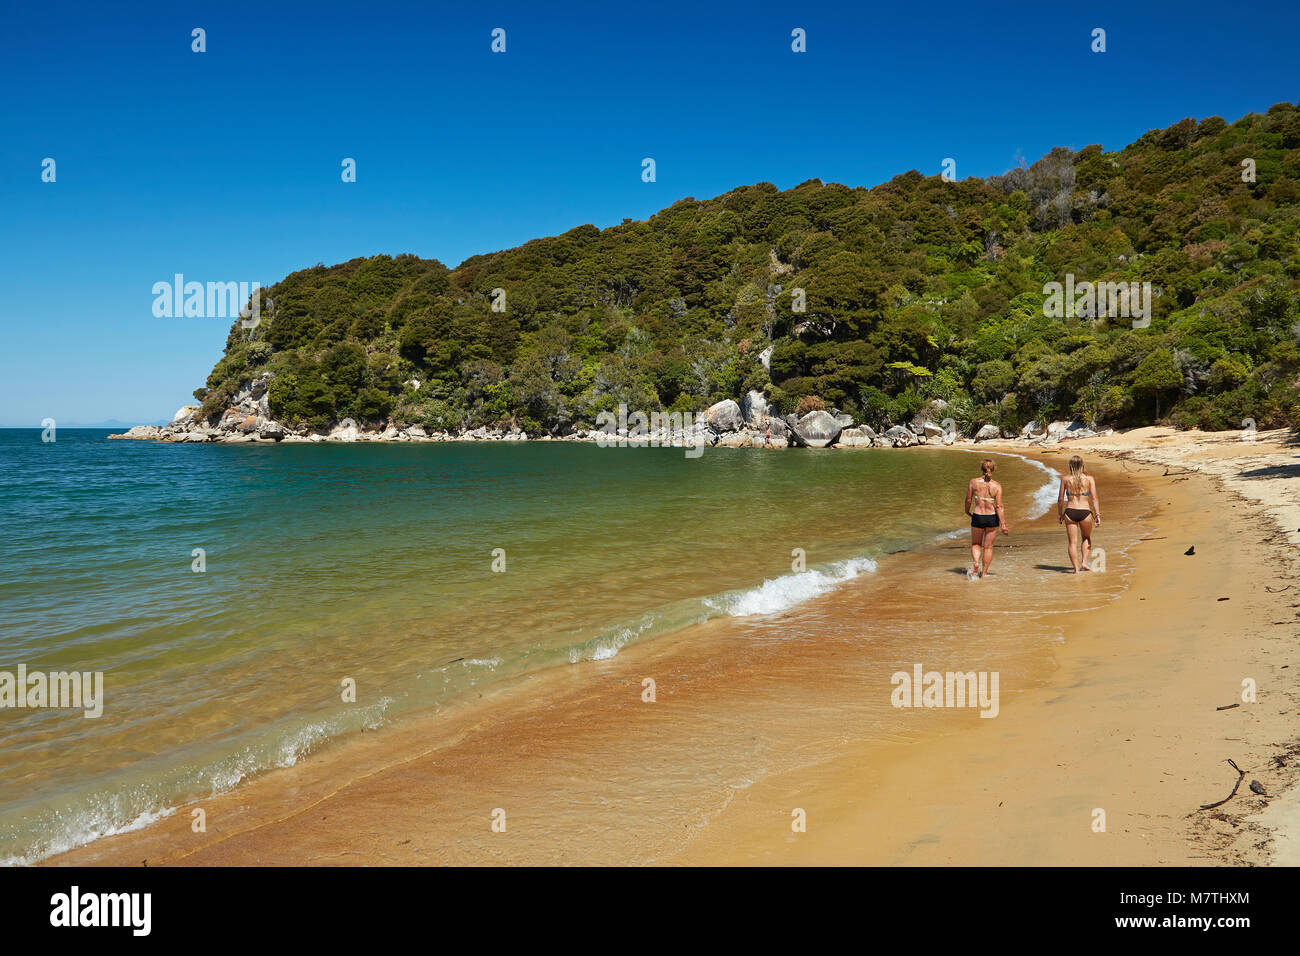 Les gens qui marchent le long de la plage à Te Pukatea Bay, parc national Abel Tasman, région de Nelson, Photo Stock